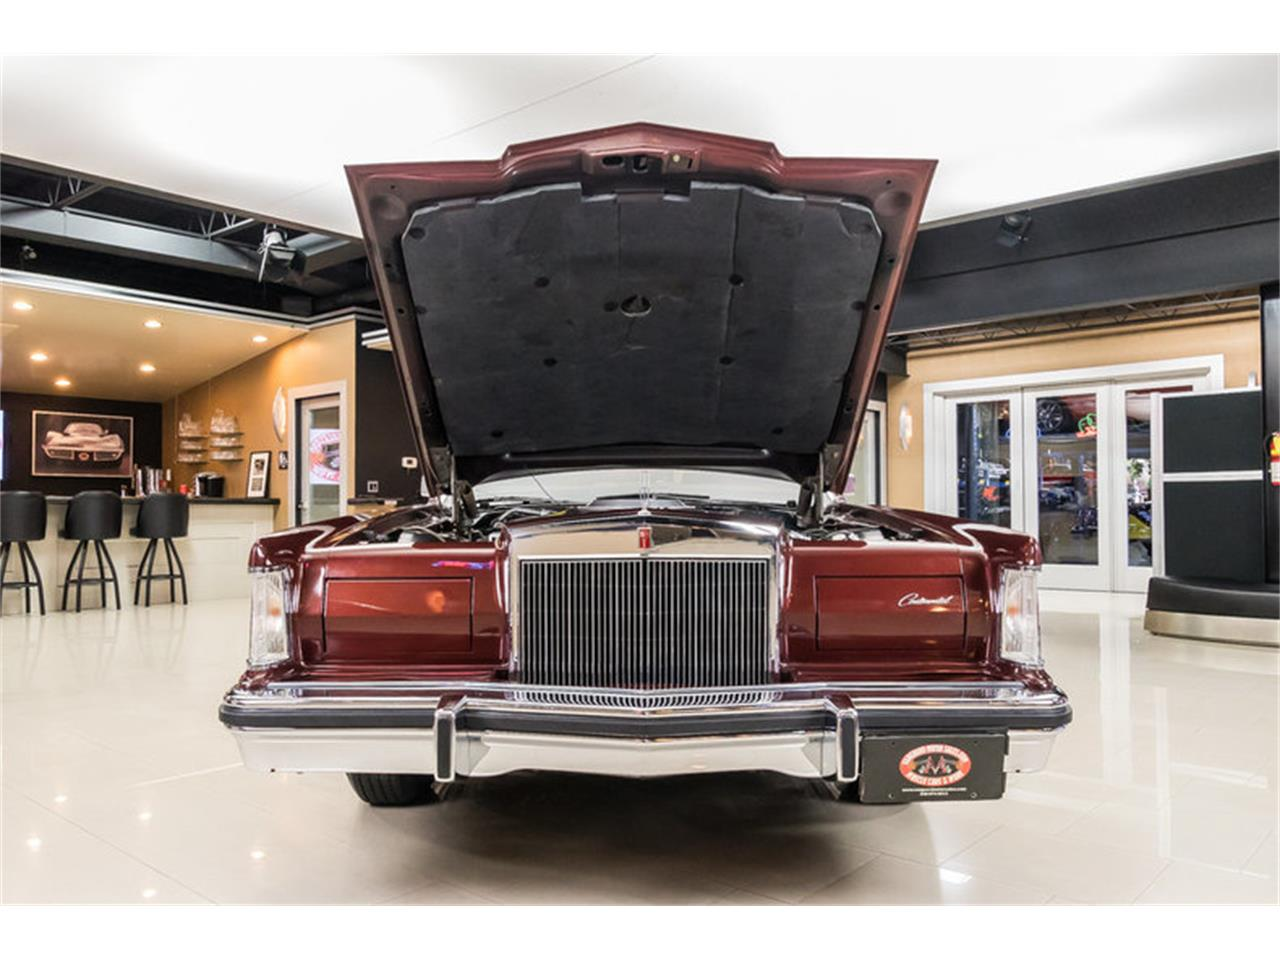 1979 Lincoln Continental For Sale Cc 1106907 79 Mark V Wiring Diagram Large Picture Of Nq3f